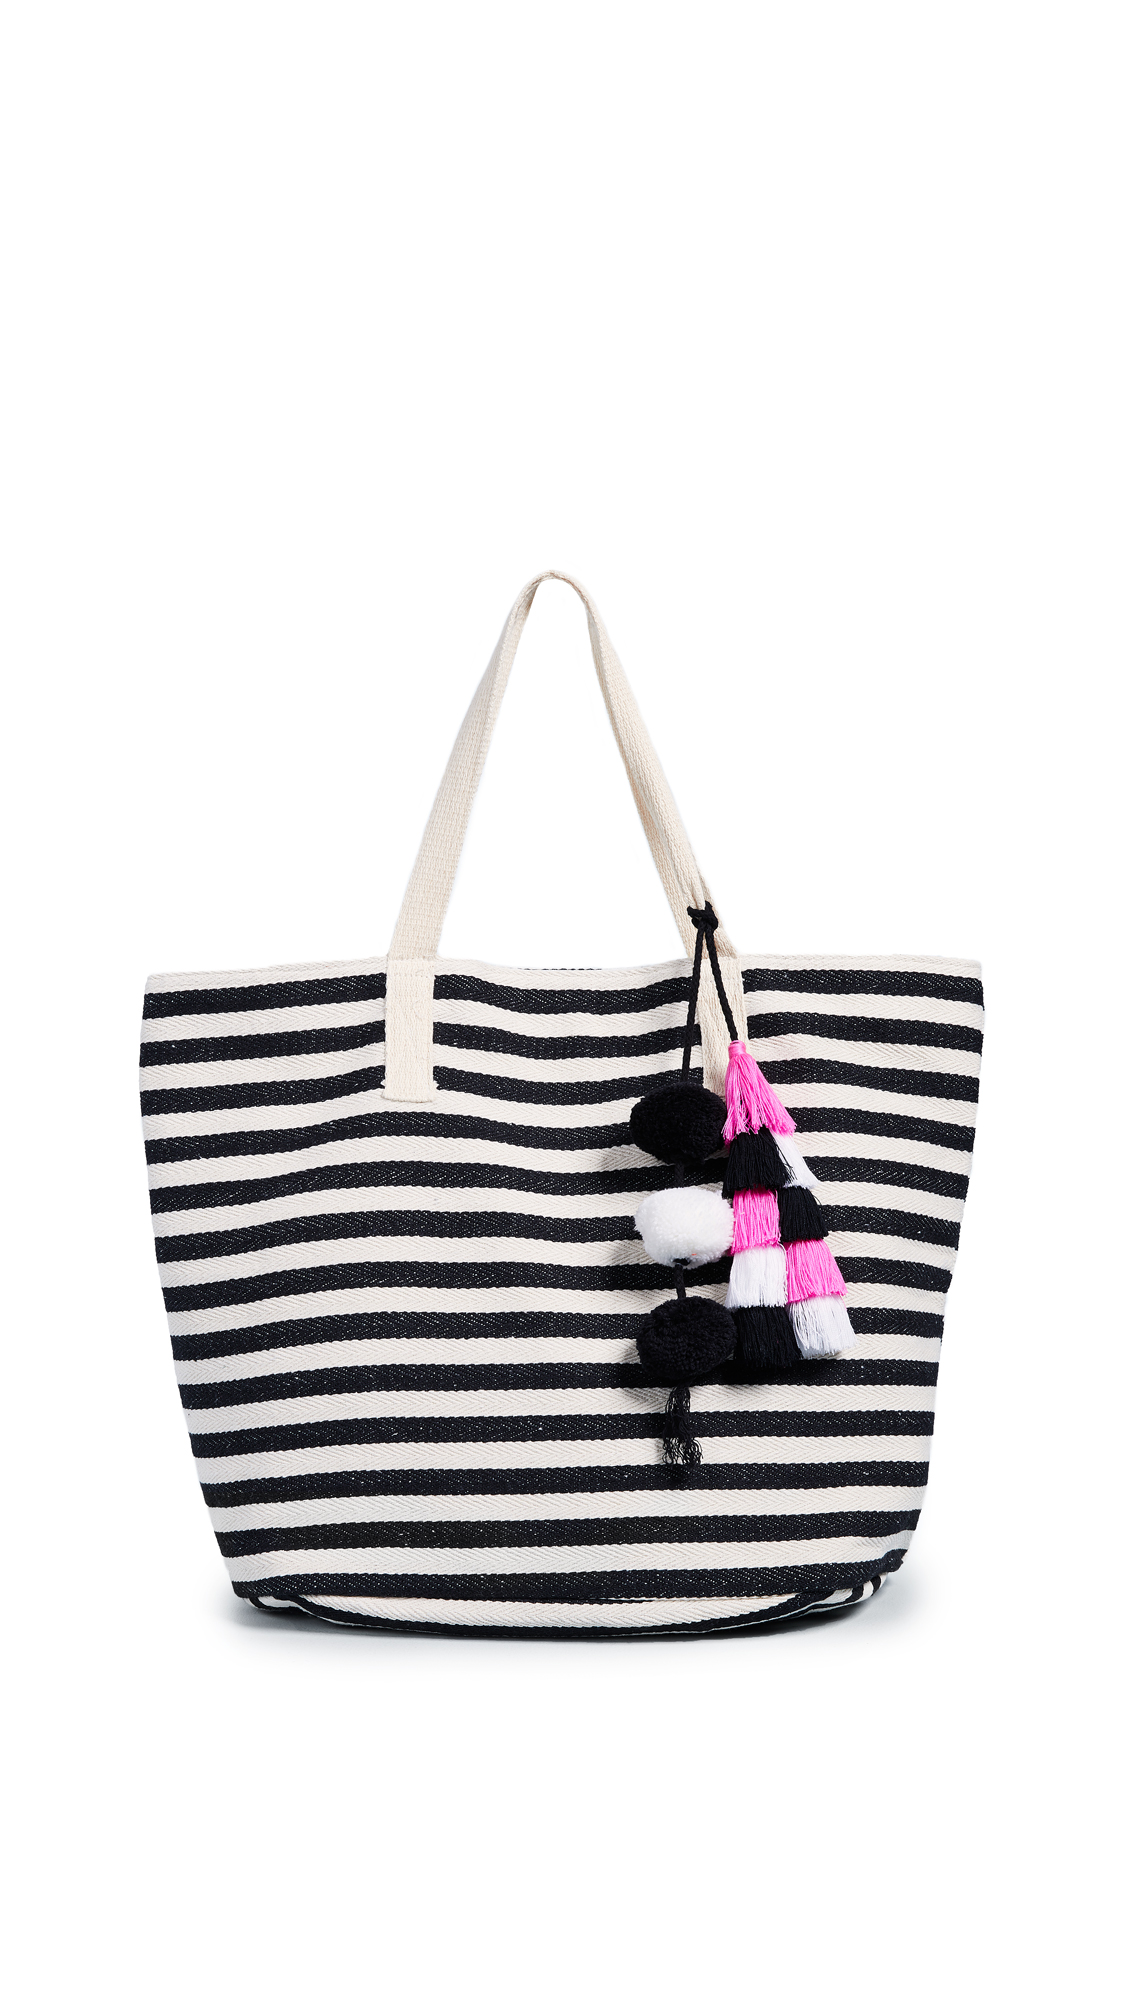 Valerie Small Bucket Tote, Black/Pink